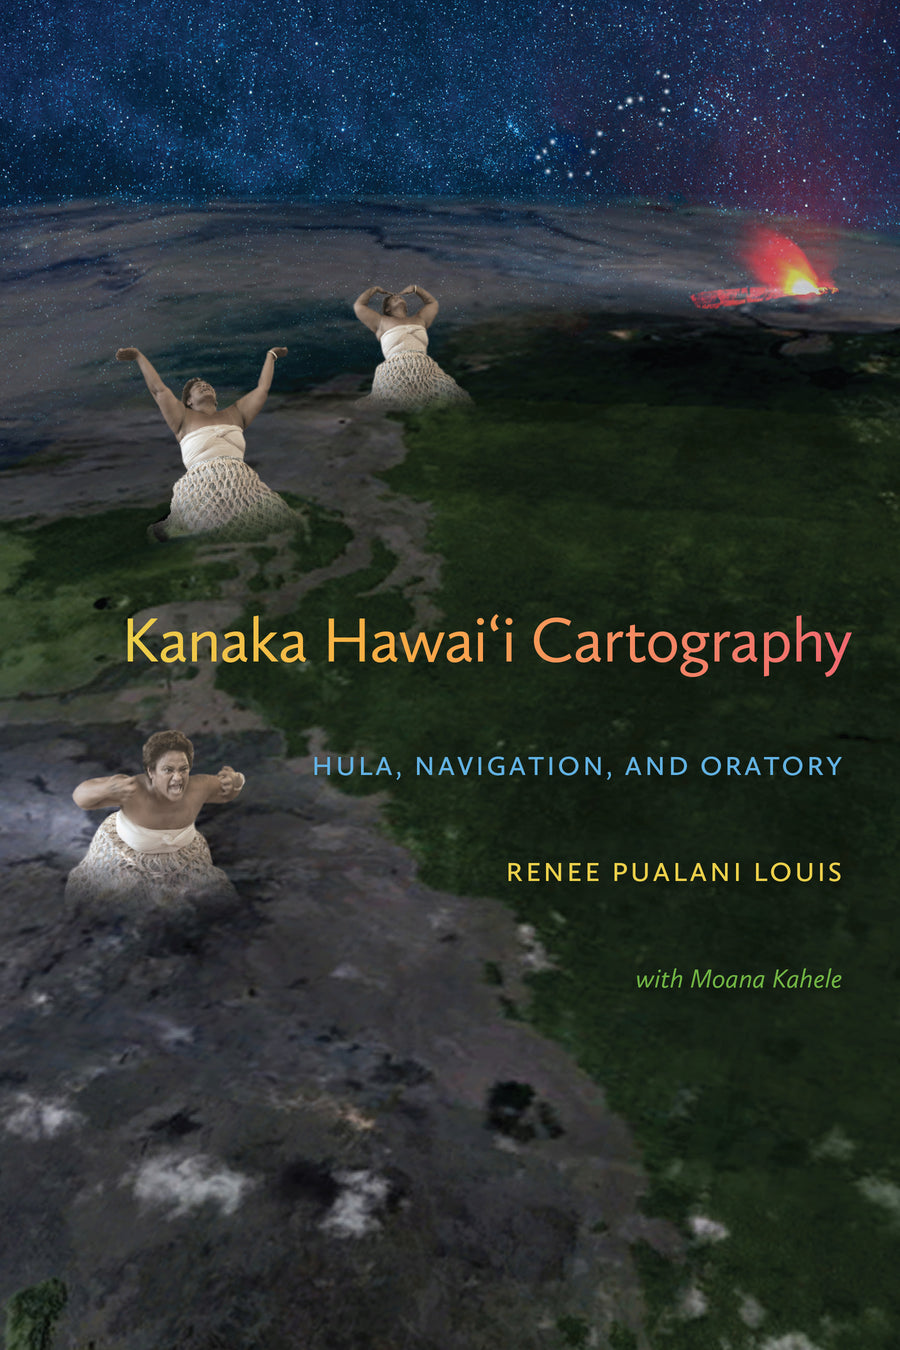 Kanaka Hawai'i Cartography: Hula, Navigation, and Oratory